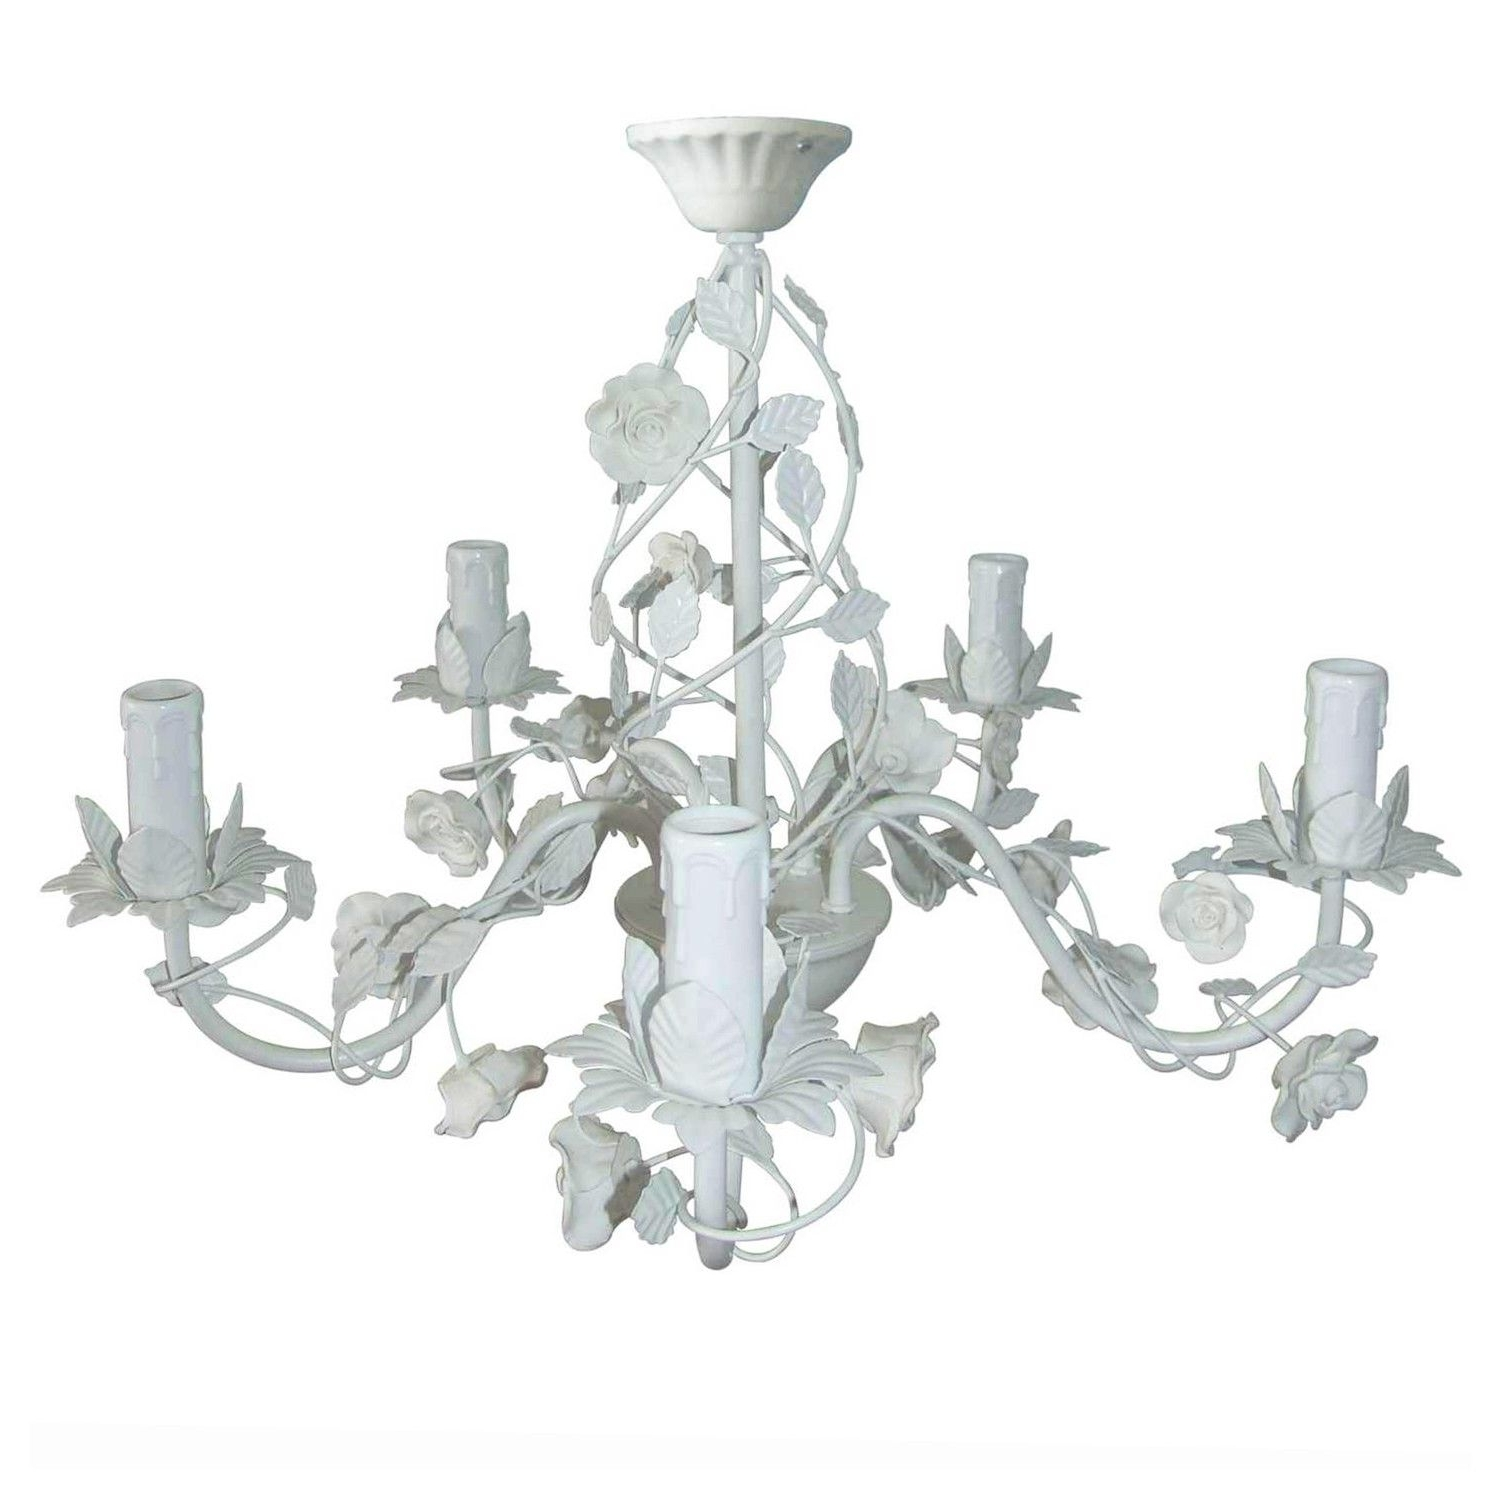 This Cream Rose 5 Arm Chandelier Is A Beautiful Light Fixture In With Regard To Favorite Cream Chandeliers (View 16 of 20)